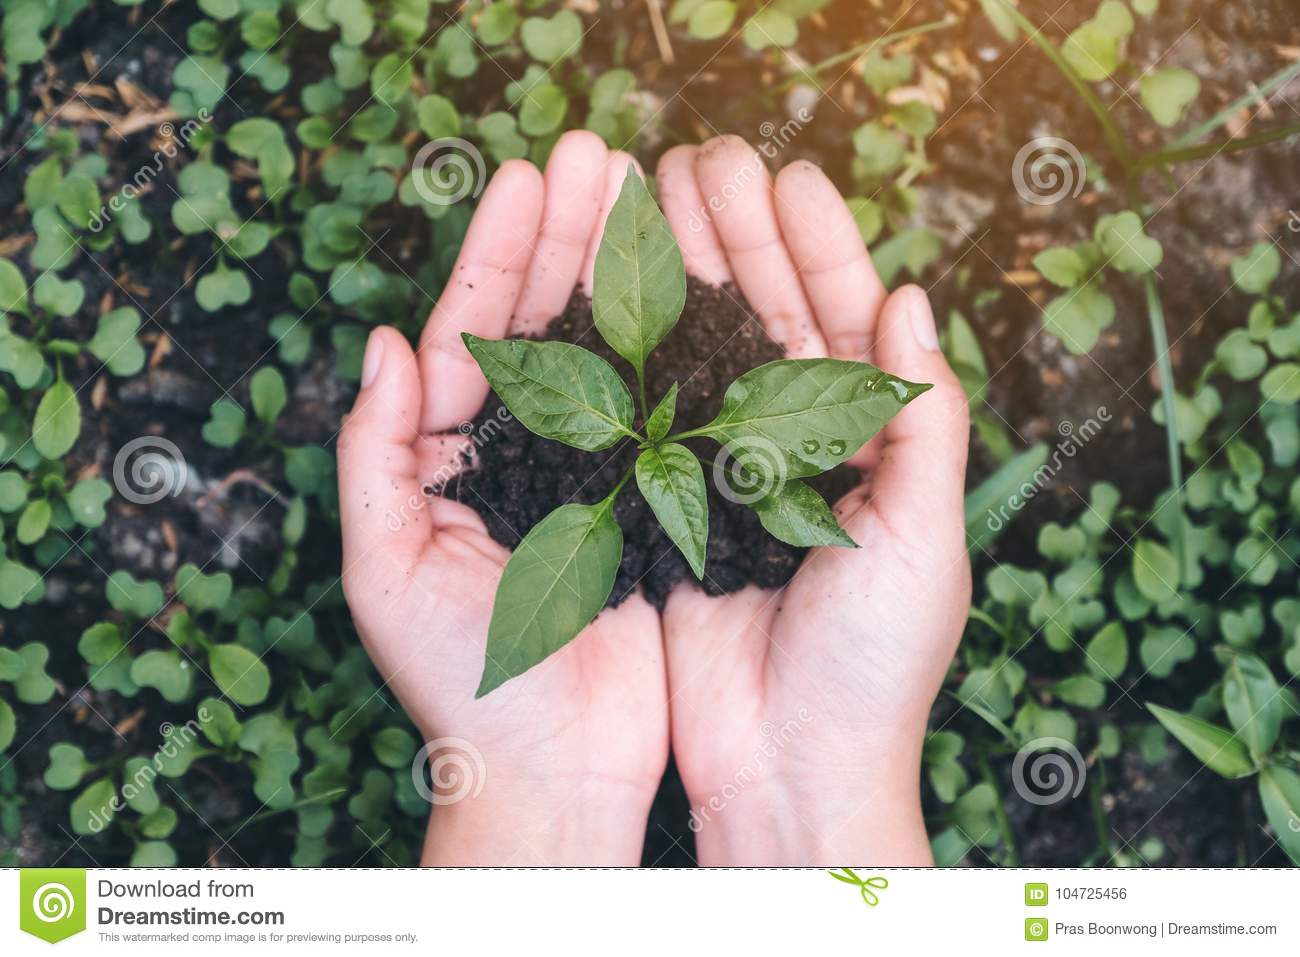 Top view image of hands holding soil and small tree to glow